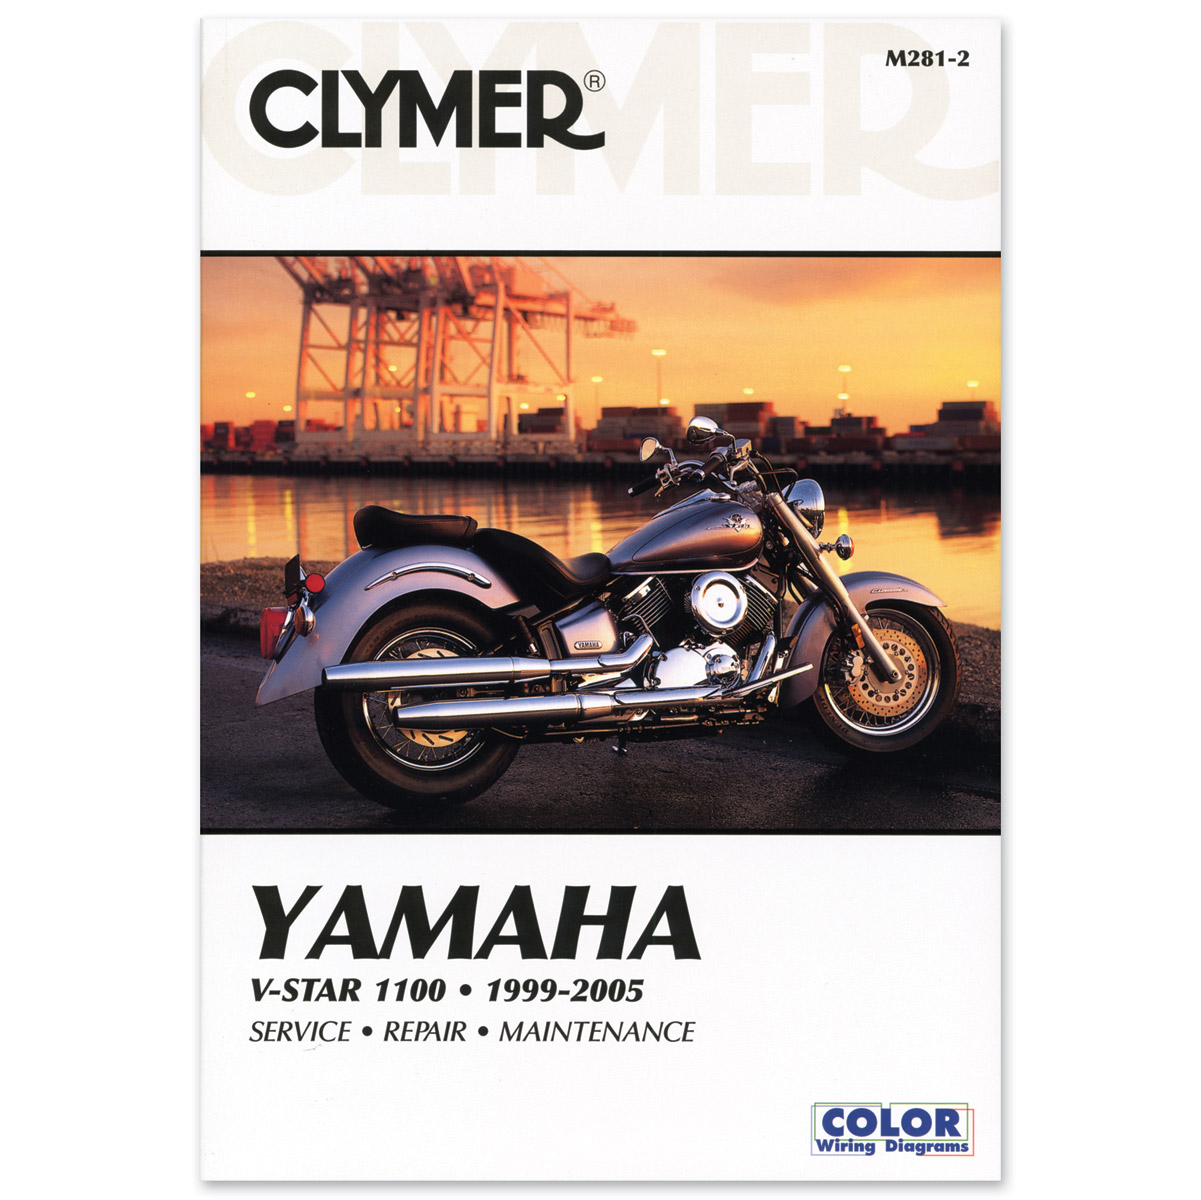 clymer yamaha motorcycle repair manual zz16755 j p cycles rh jpcycles com Yamaha Motorcycle Schematics Yamaha Motorcycle Parts